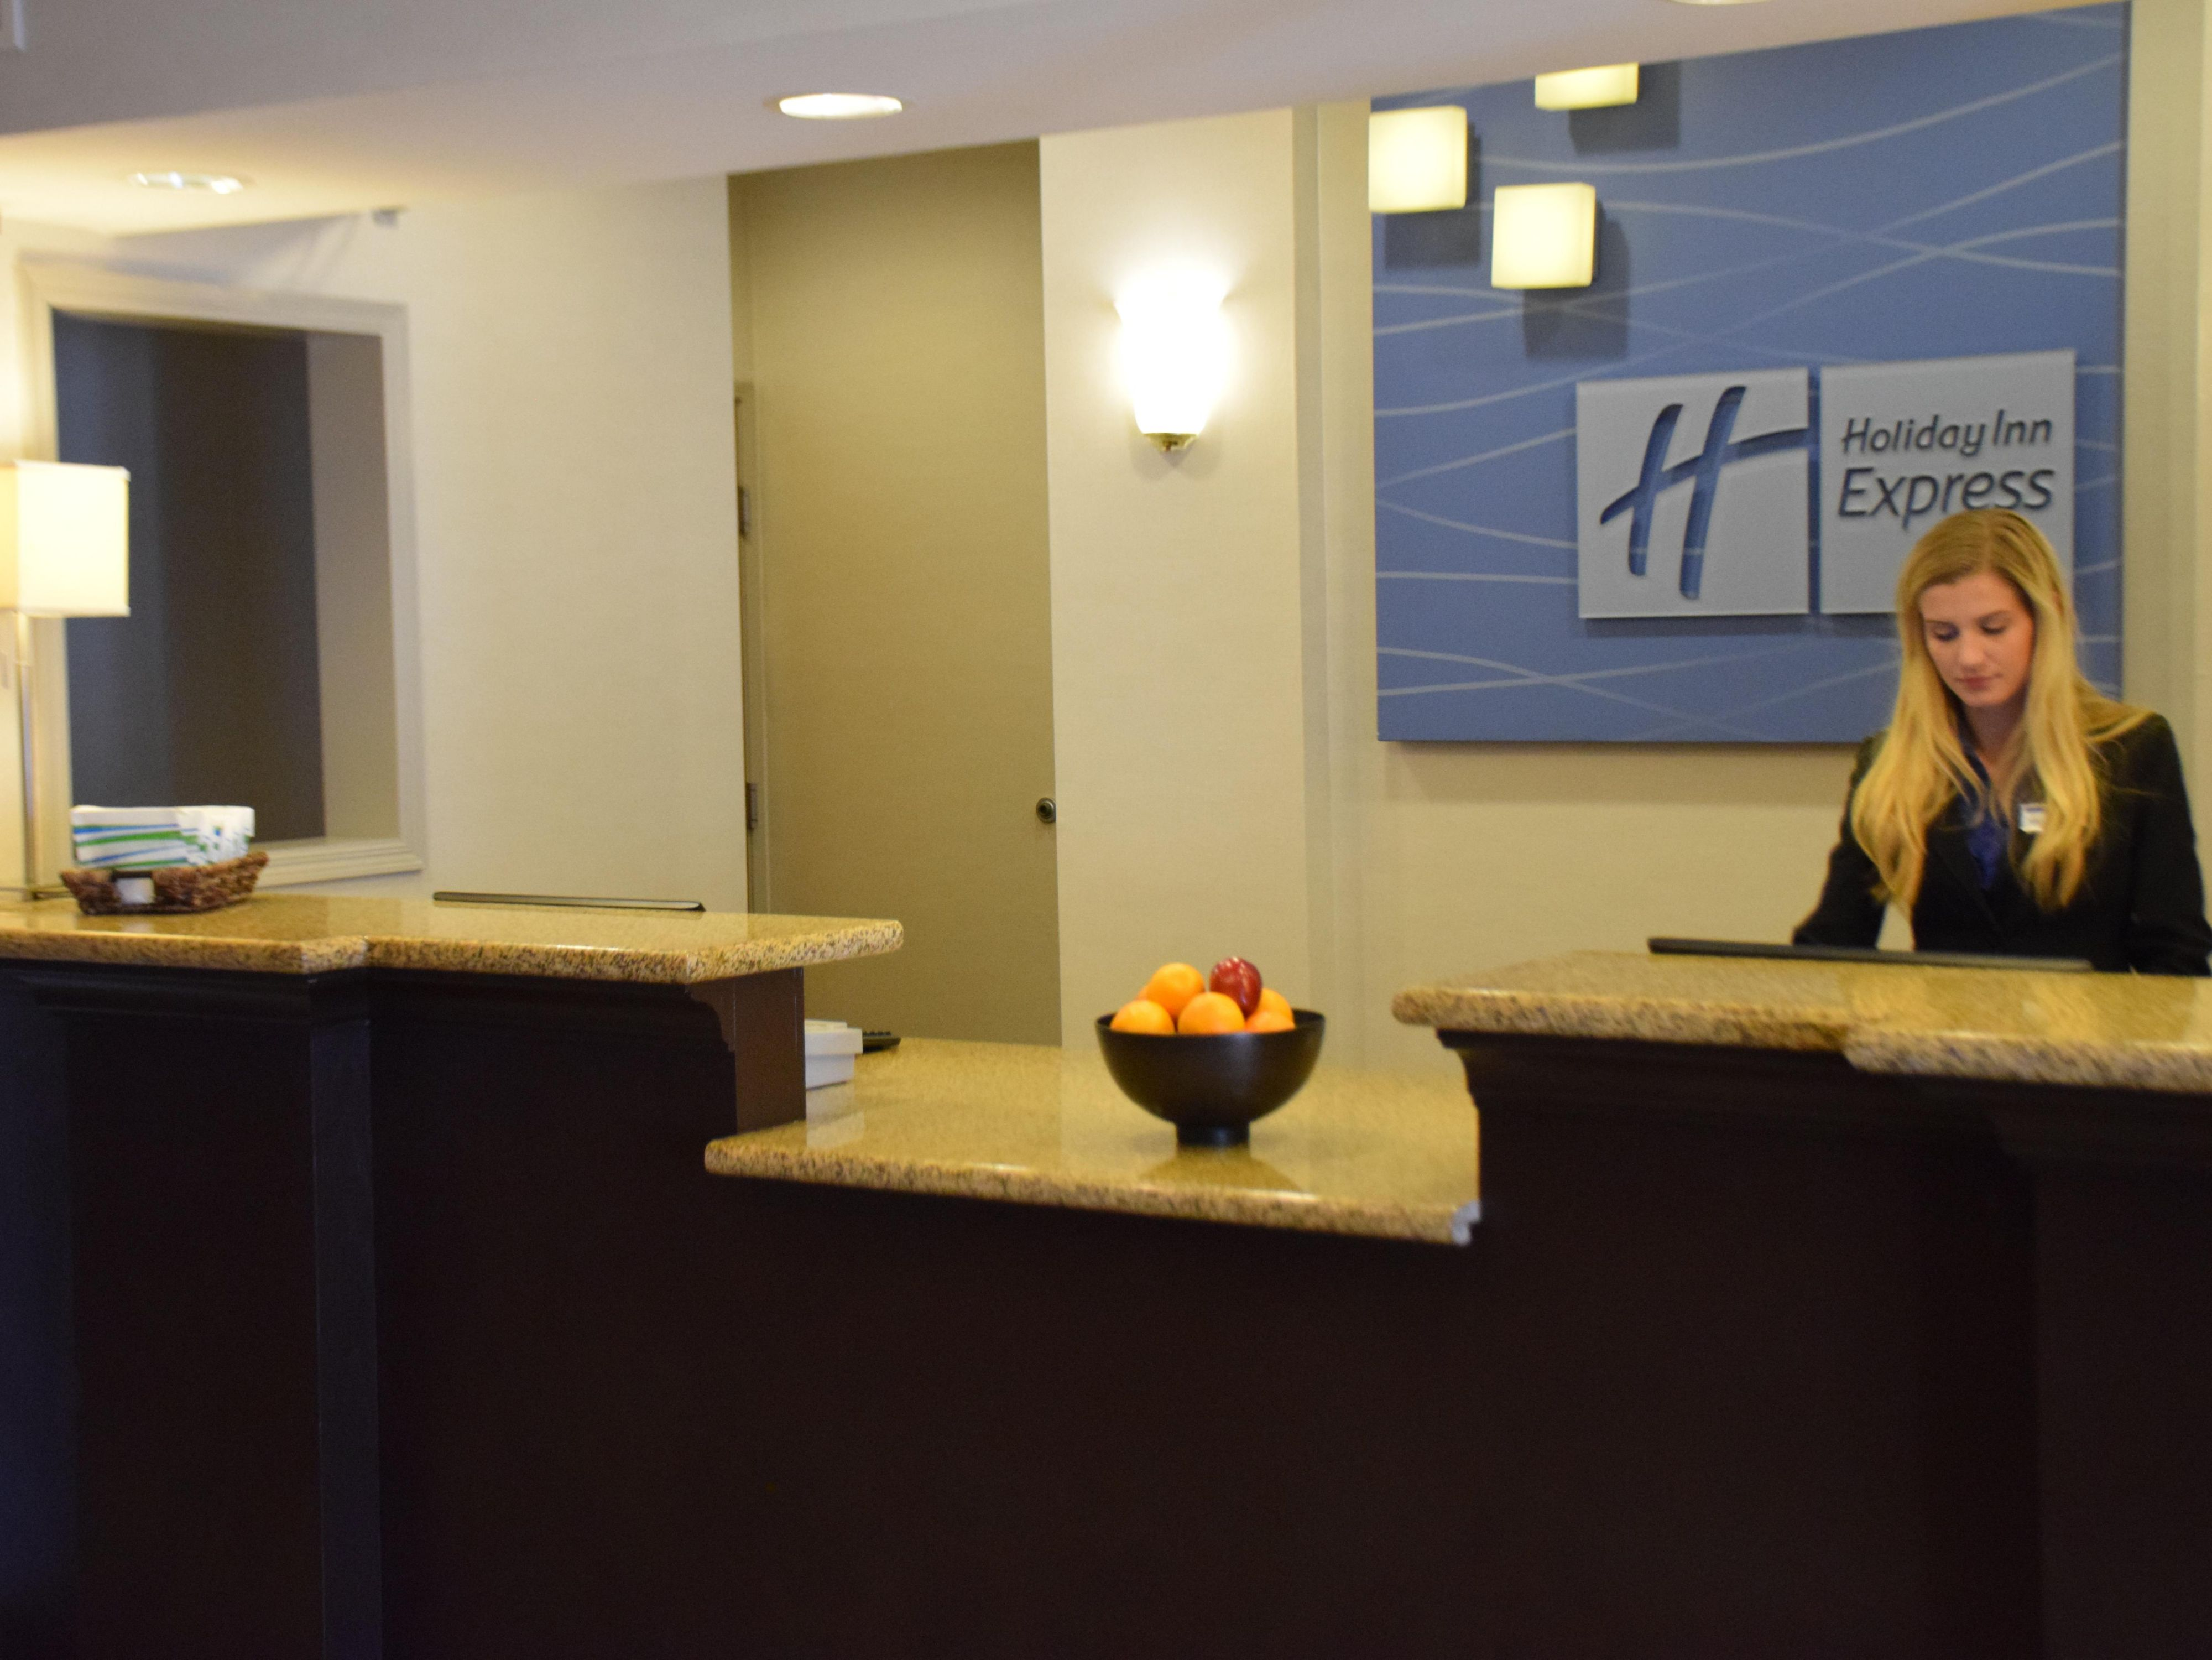 Welcome to the Holiday Inn Express Chanhassen!